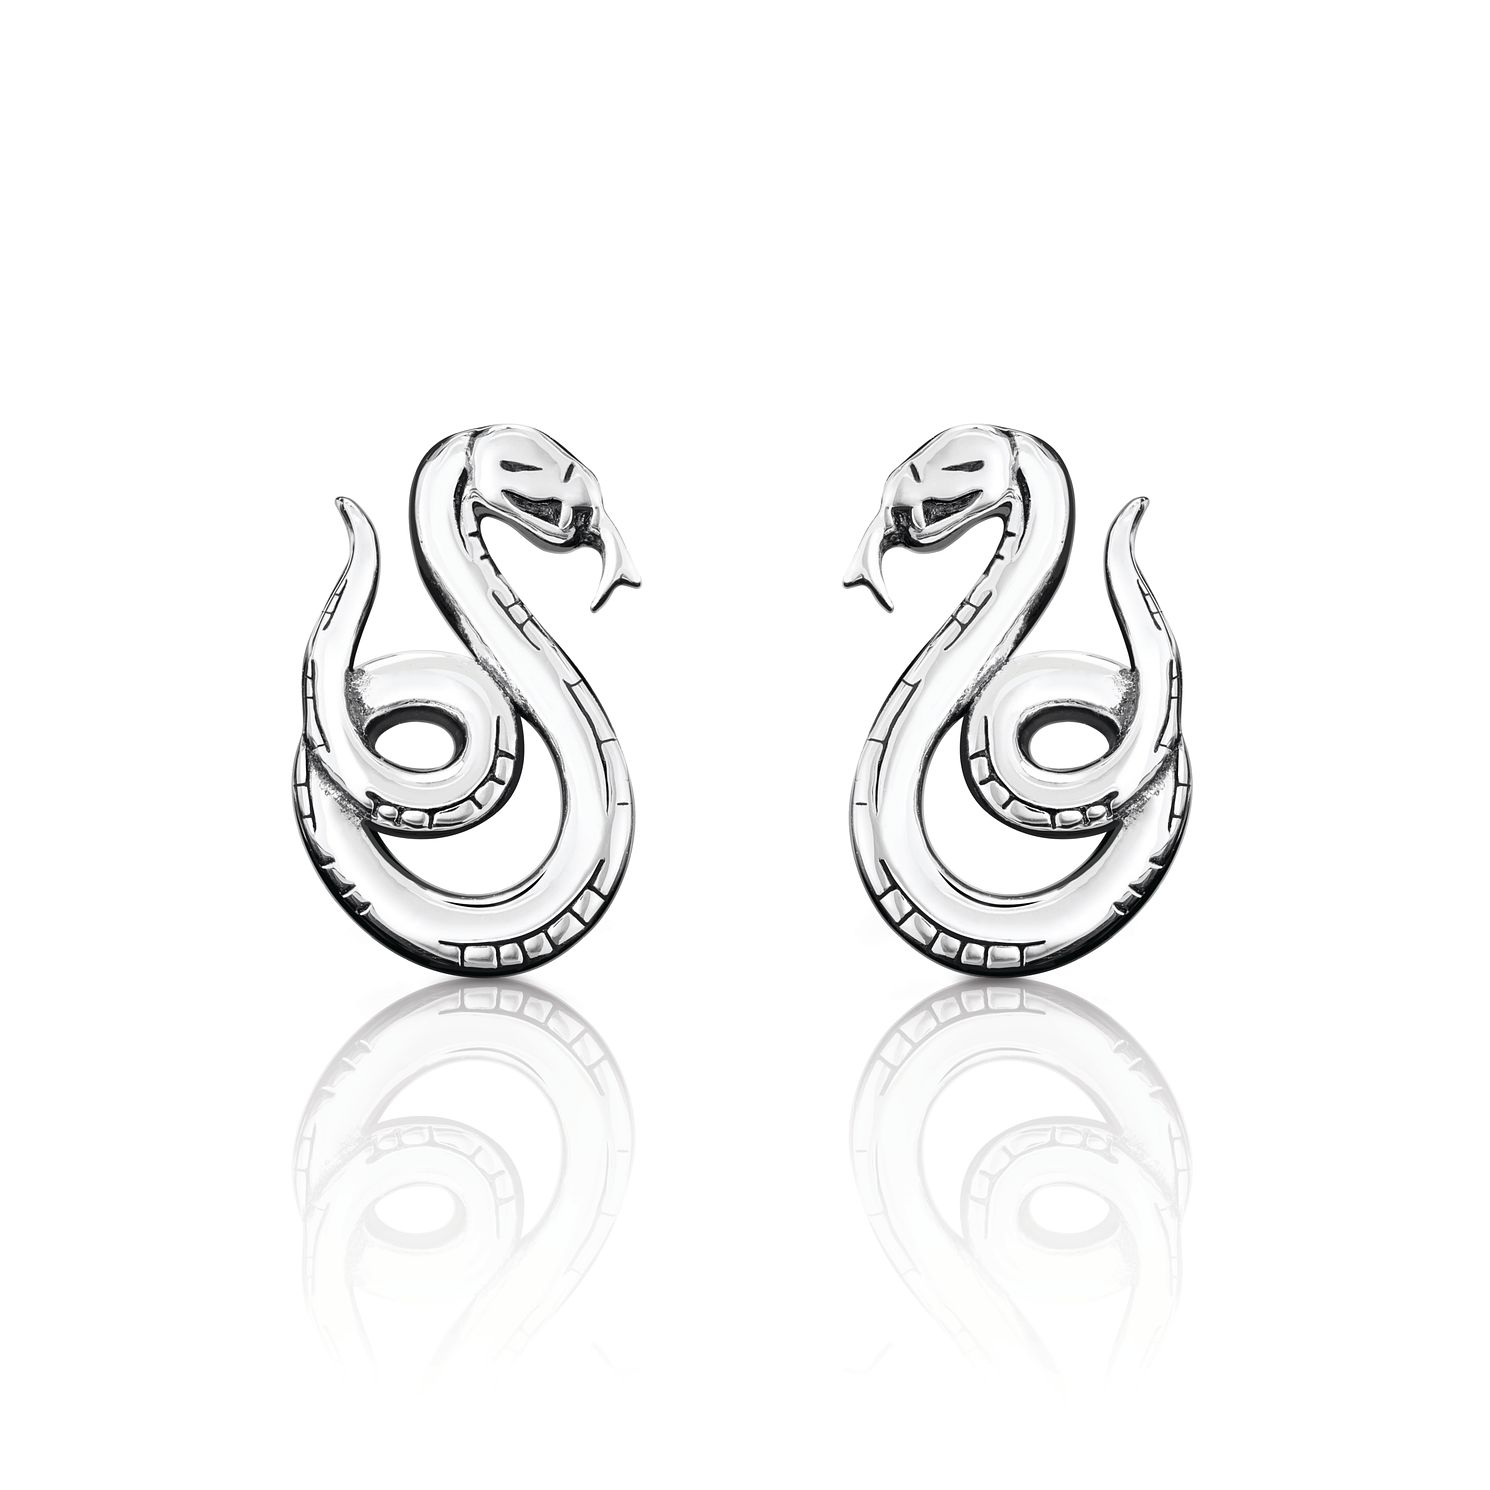 Chamilia Harry Potter Slytherin Stud Earrings - Product number 3172570